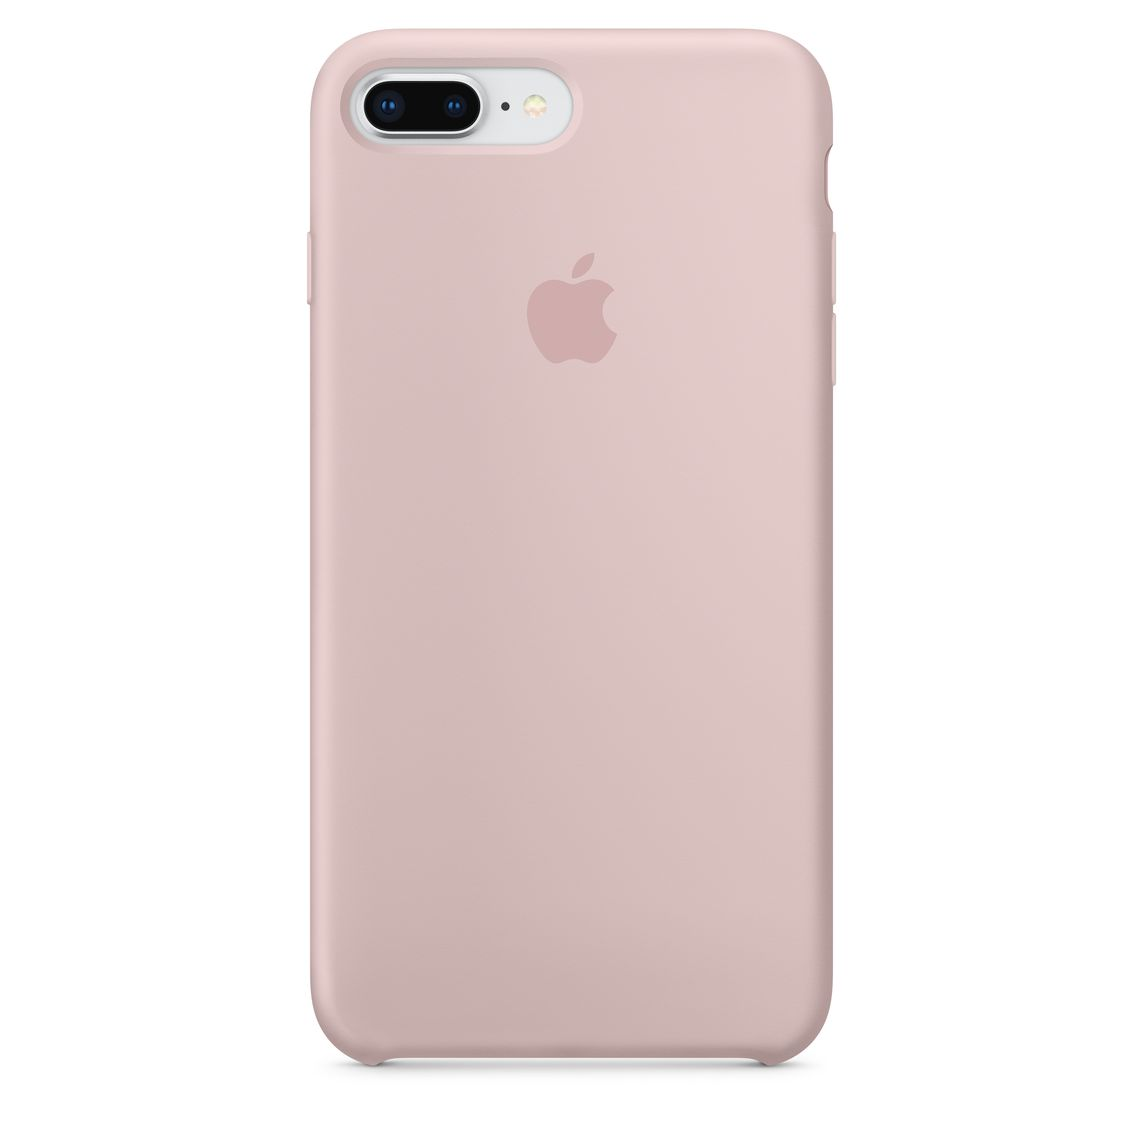 new products 2b4c9 bac27 iPhone 8 Plus / 7 Plus Silicone Case - Pink Sand